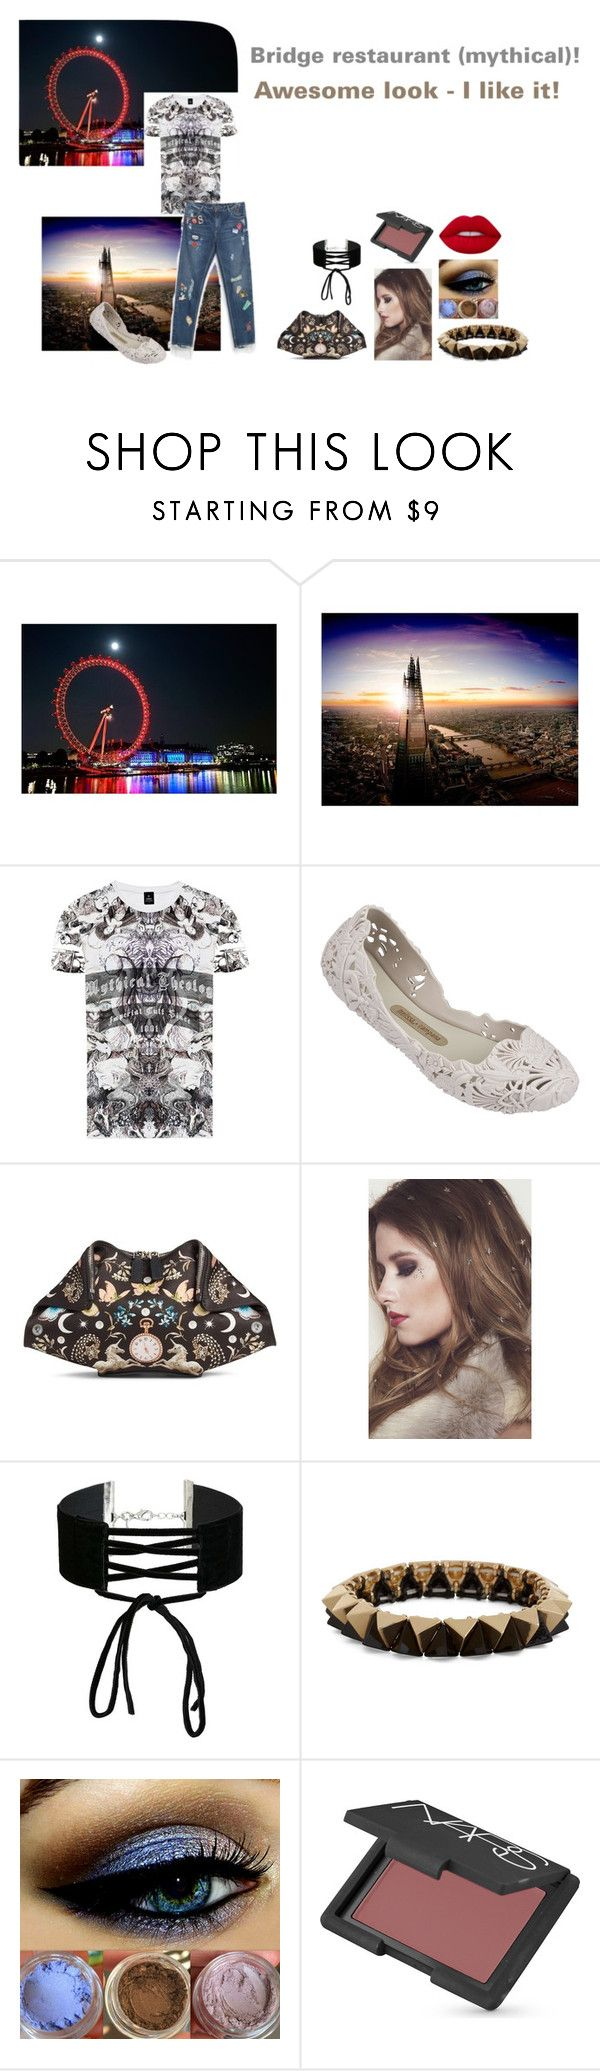 """For Scarlett (friend) - Scarlett's ideal wardrobe by me: #208: Bridge restaurant (mythical)!"" by sarah-m-smith ❤ liked on Polyvore featuring RADDAR7, Melissa, Alexander McQueen, In Your Dreams, Miss Selfridge, NARS Cosmetics and Lime Crime"